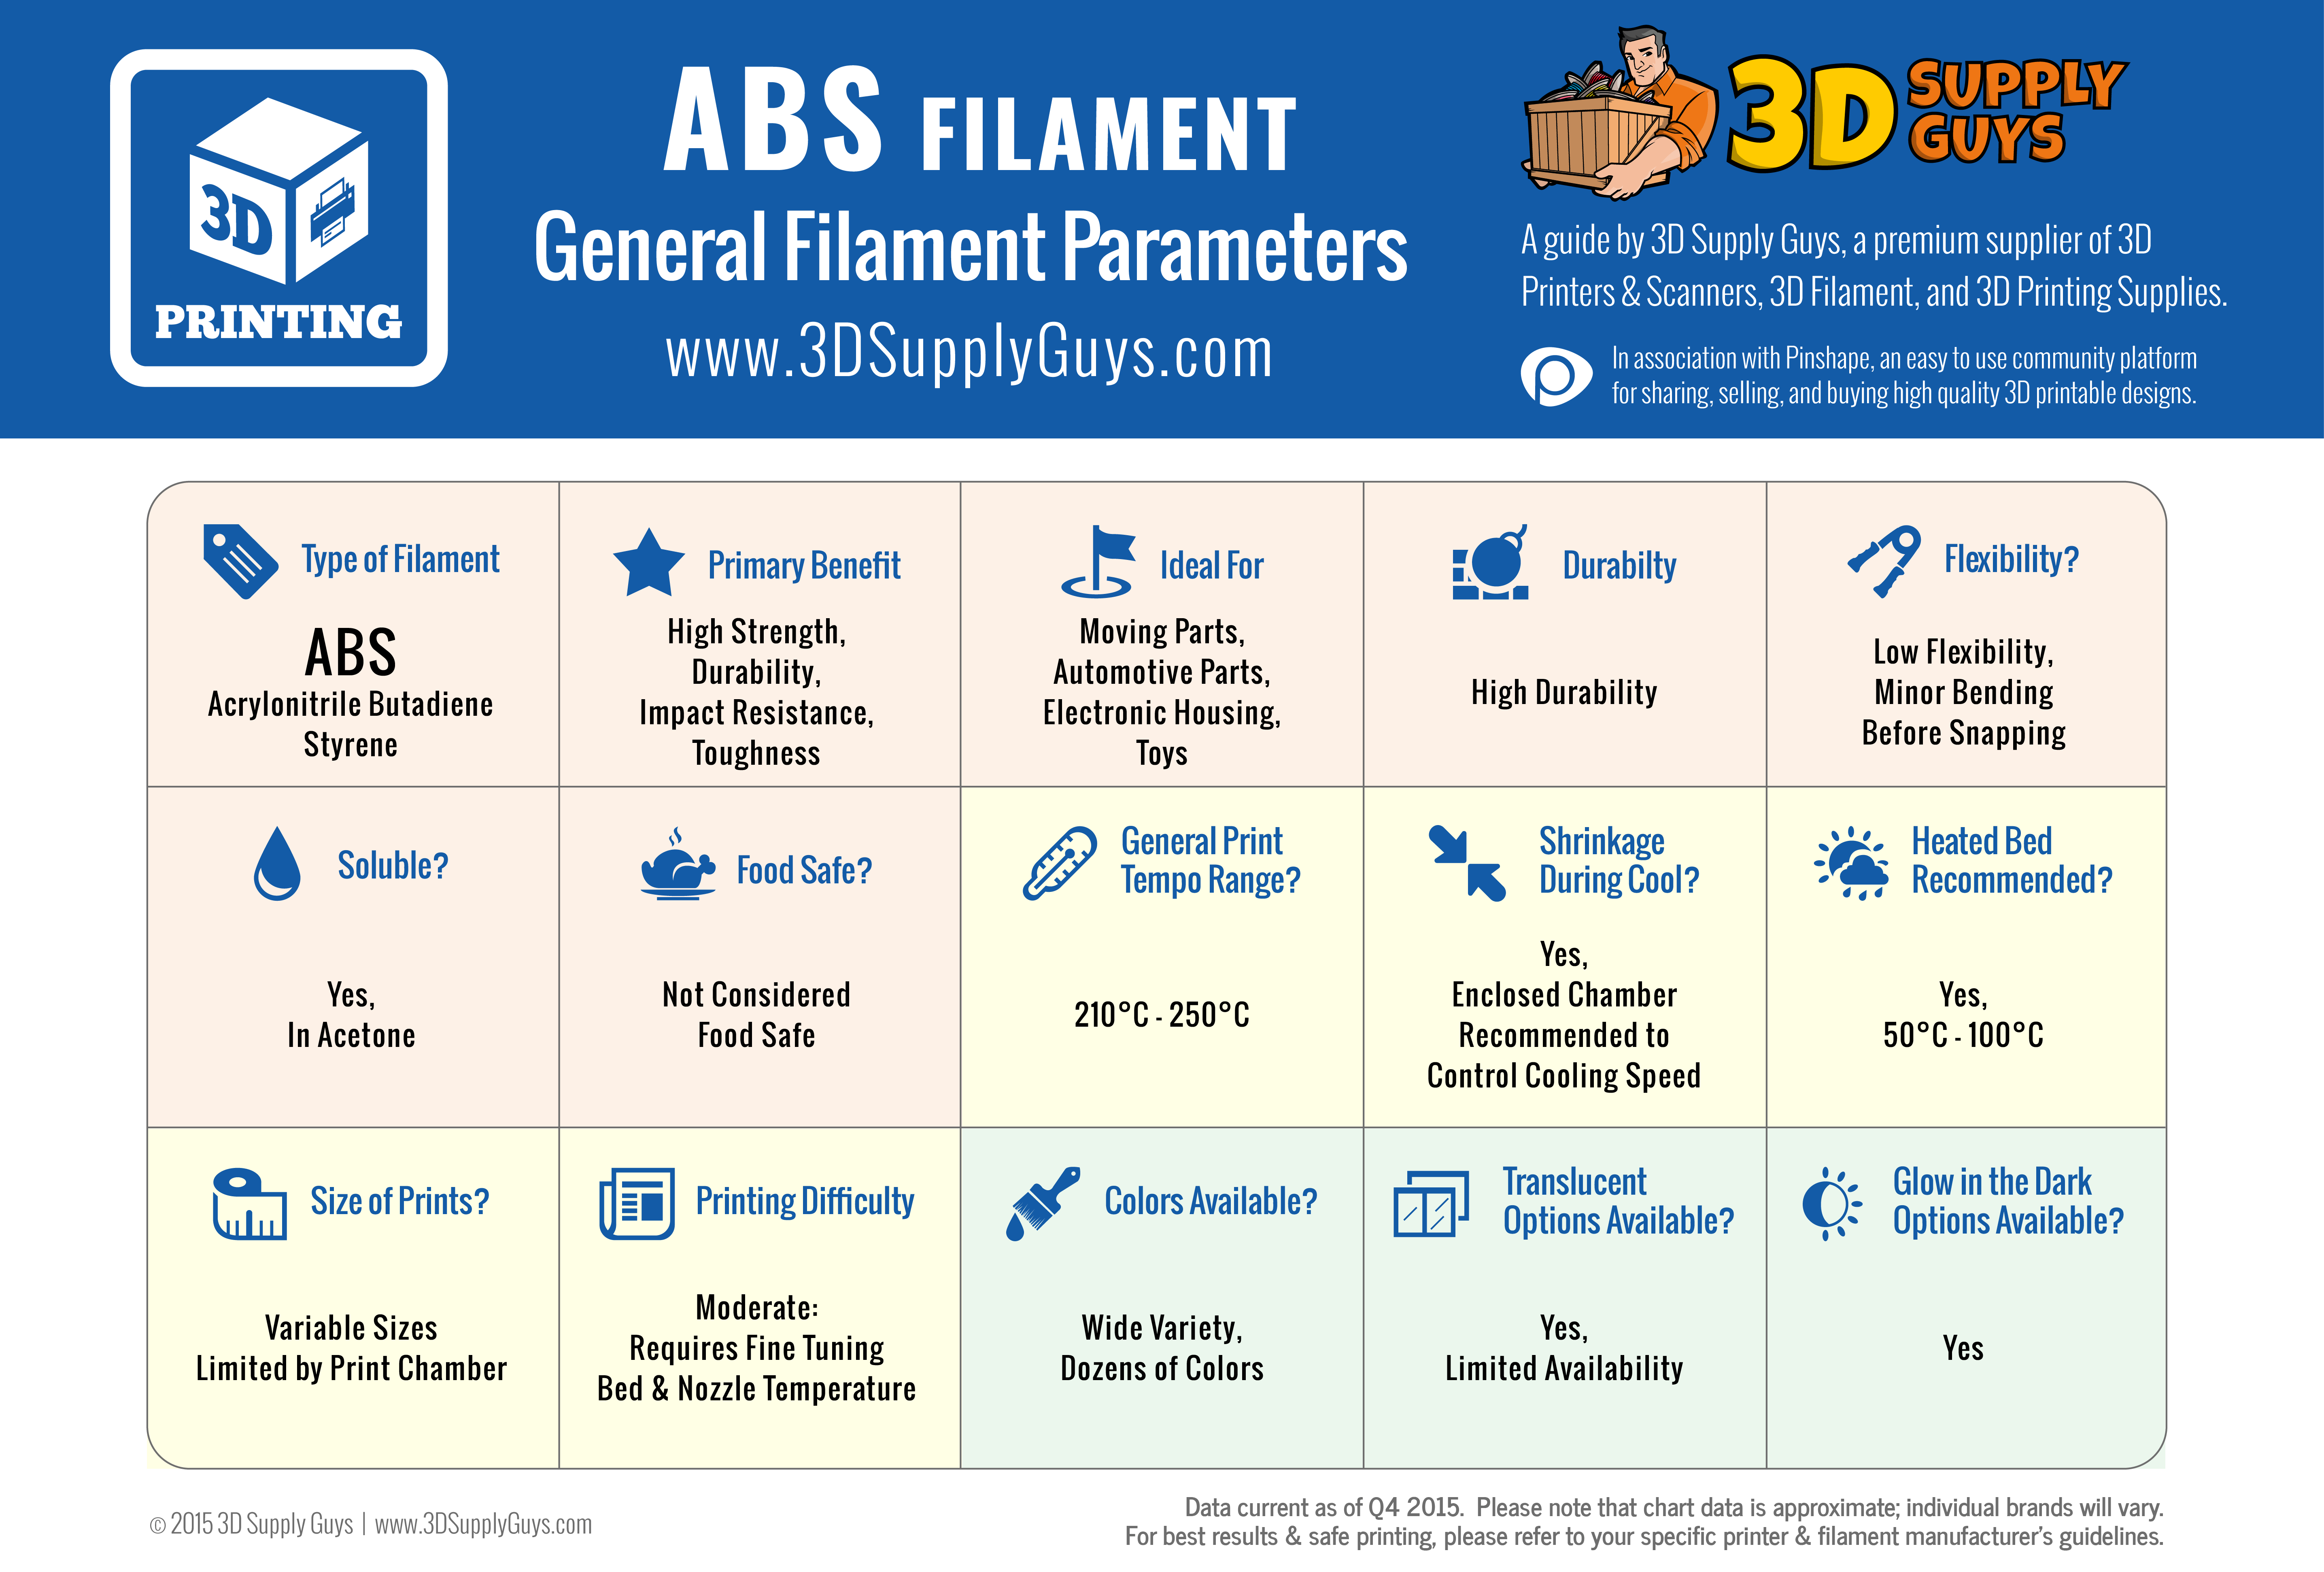 3D printing filament ABS